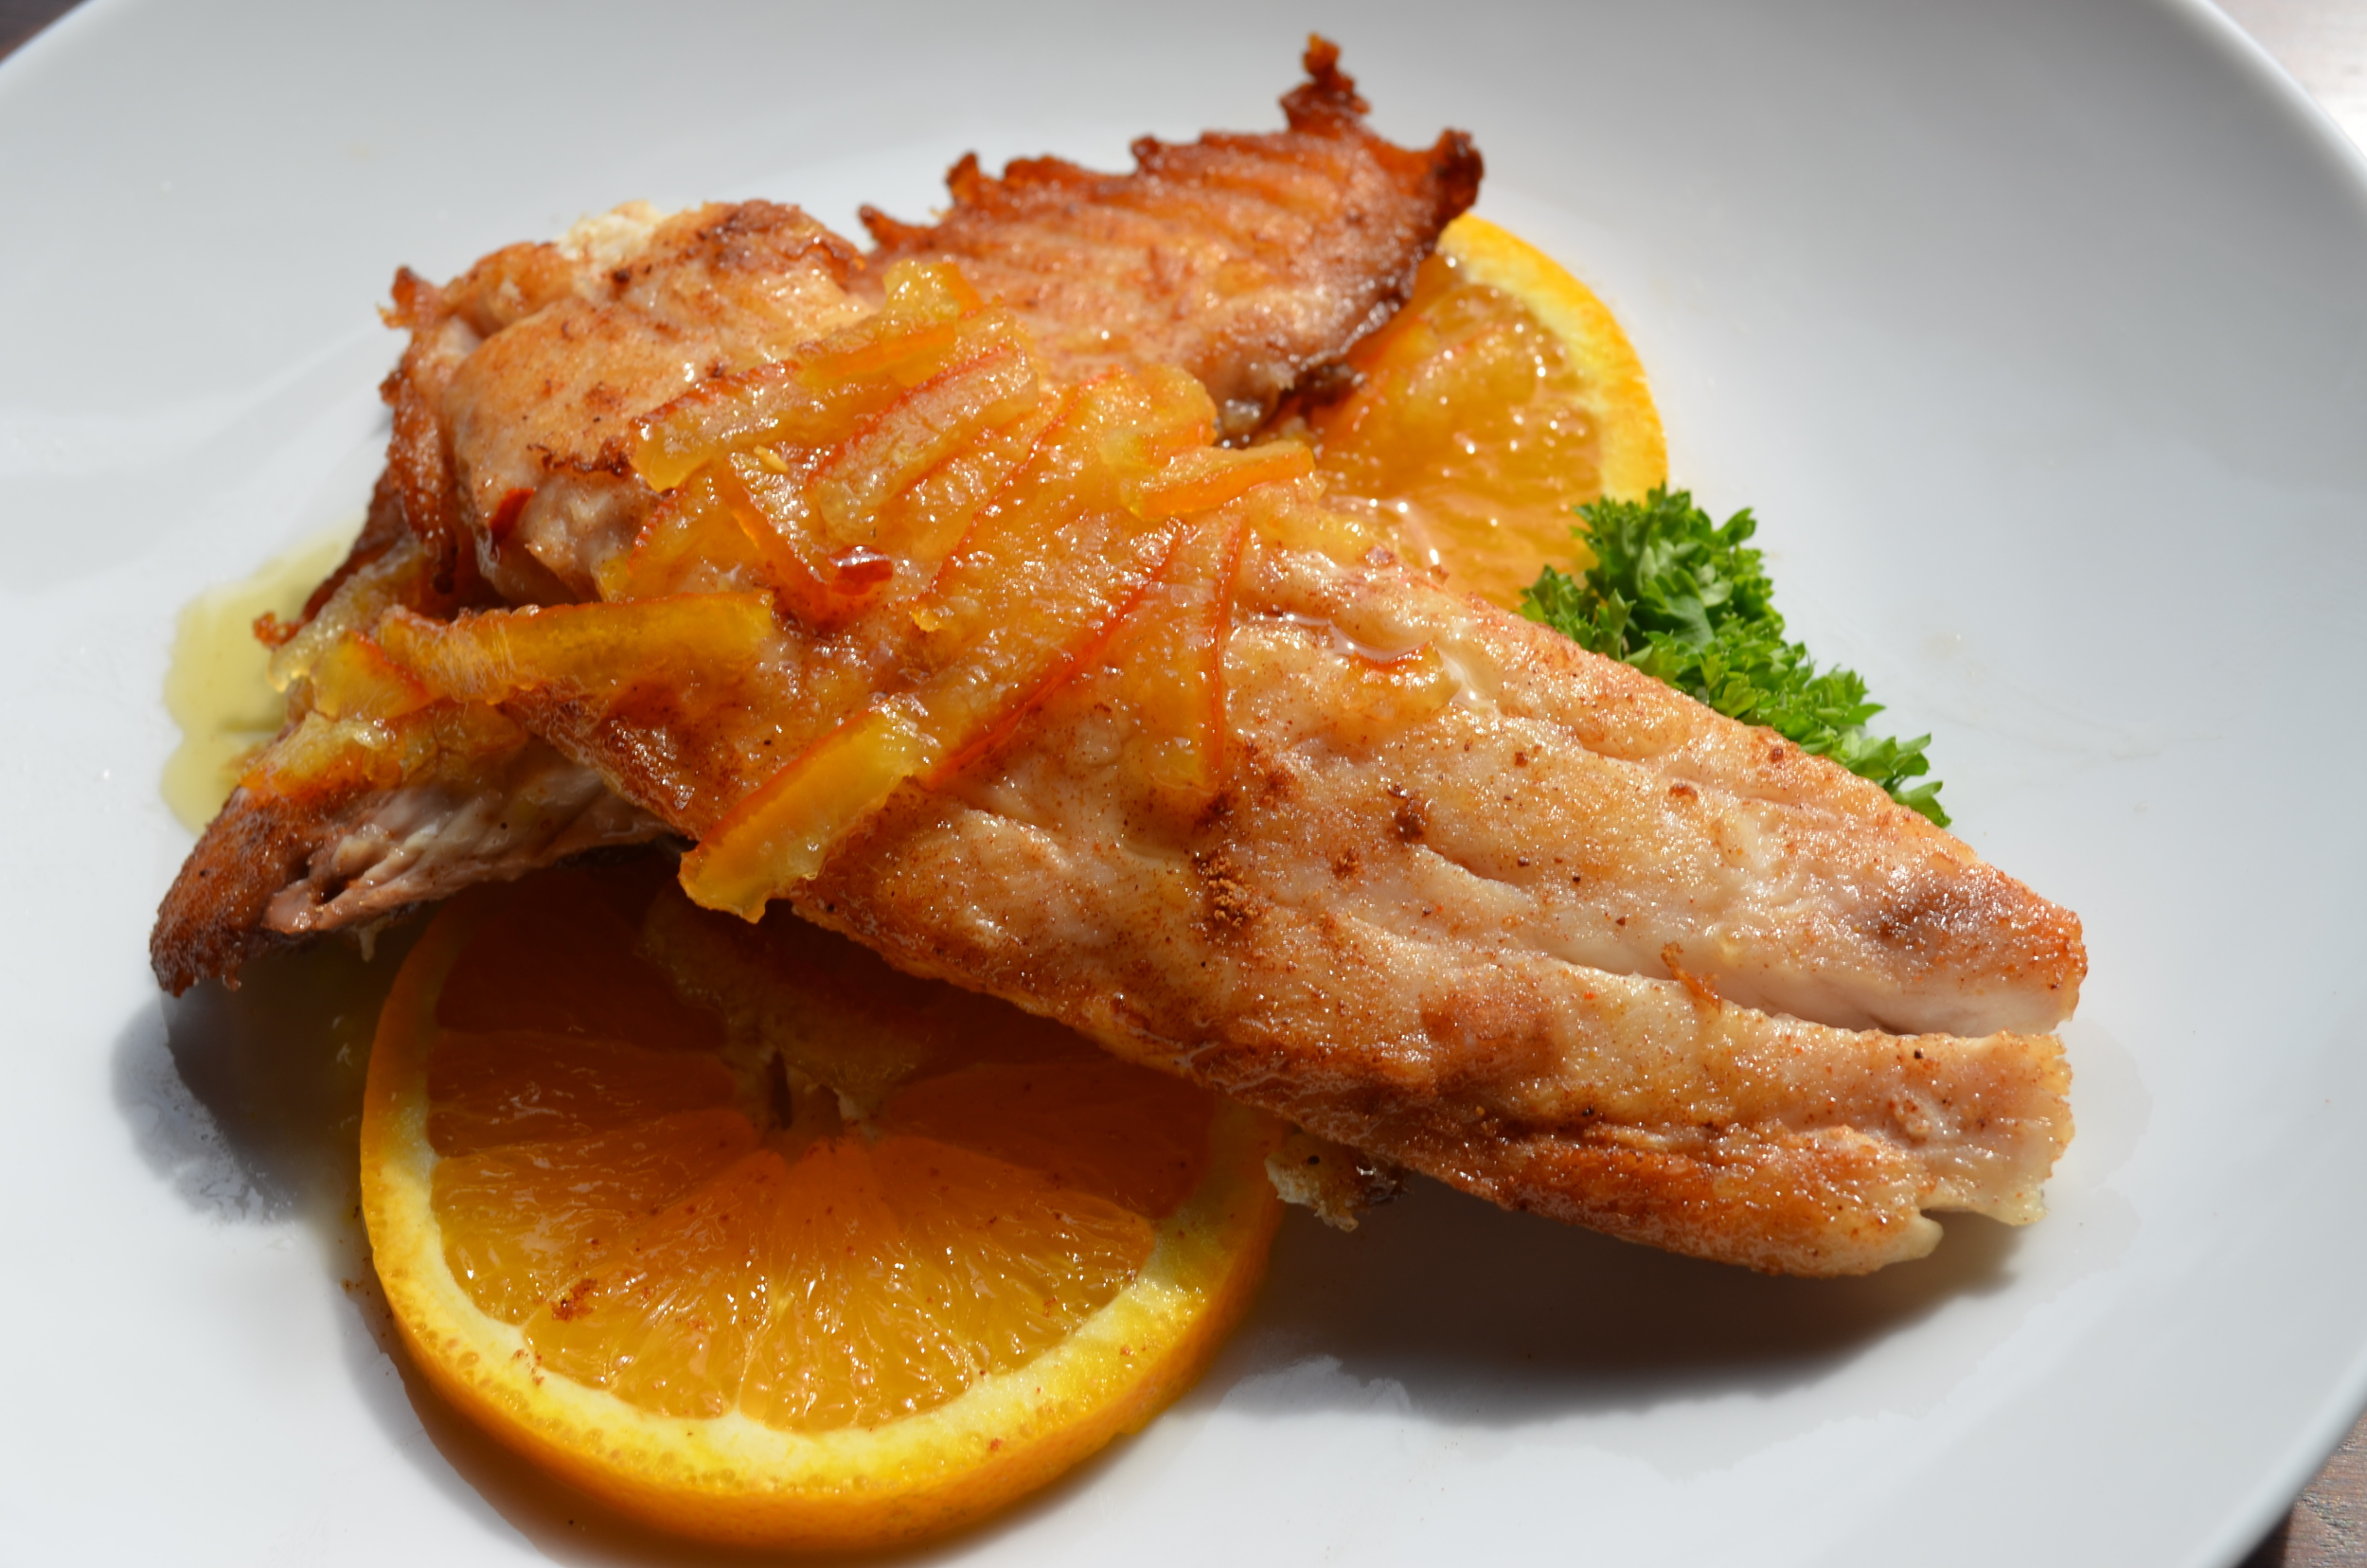 Pan-Seared Five-Spice Tilapia with Hot Orange-Ginger Sauce